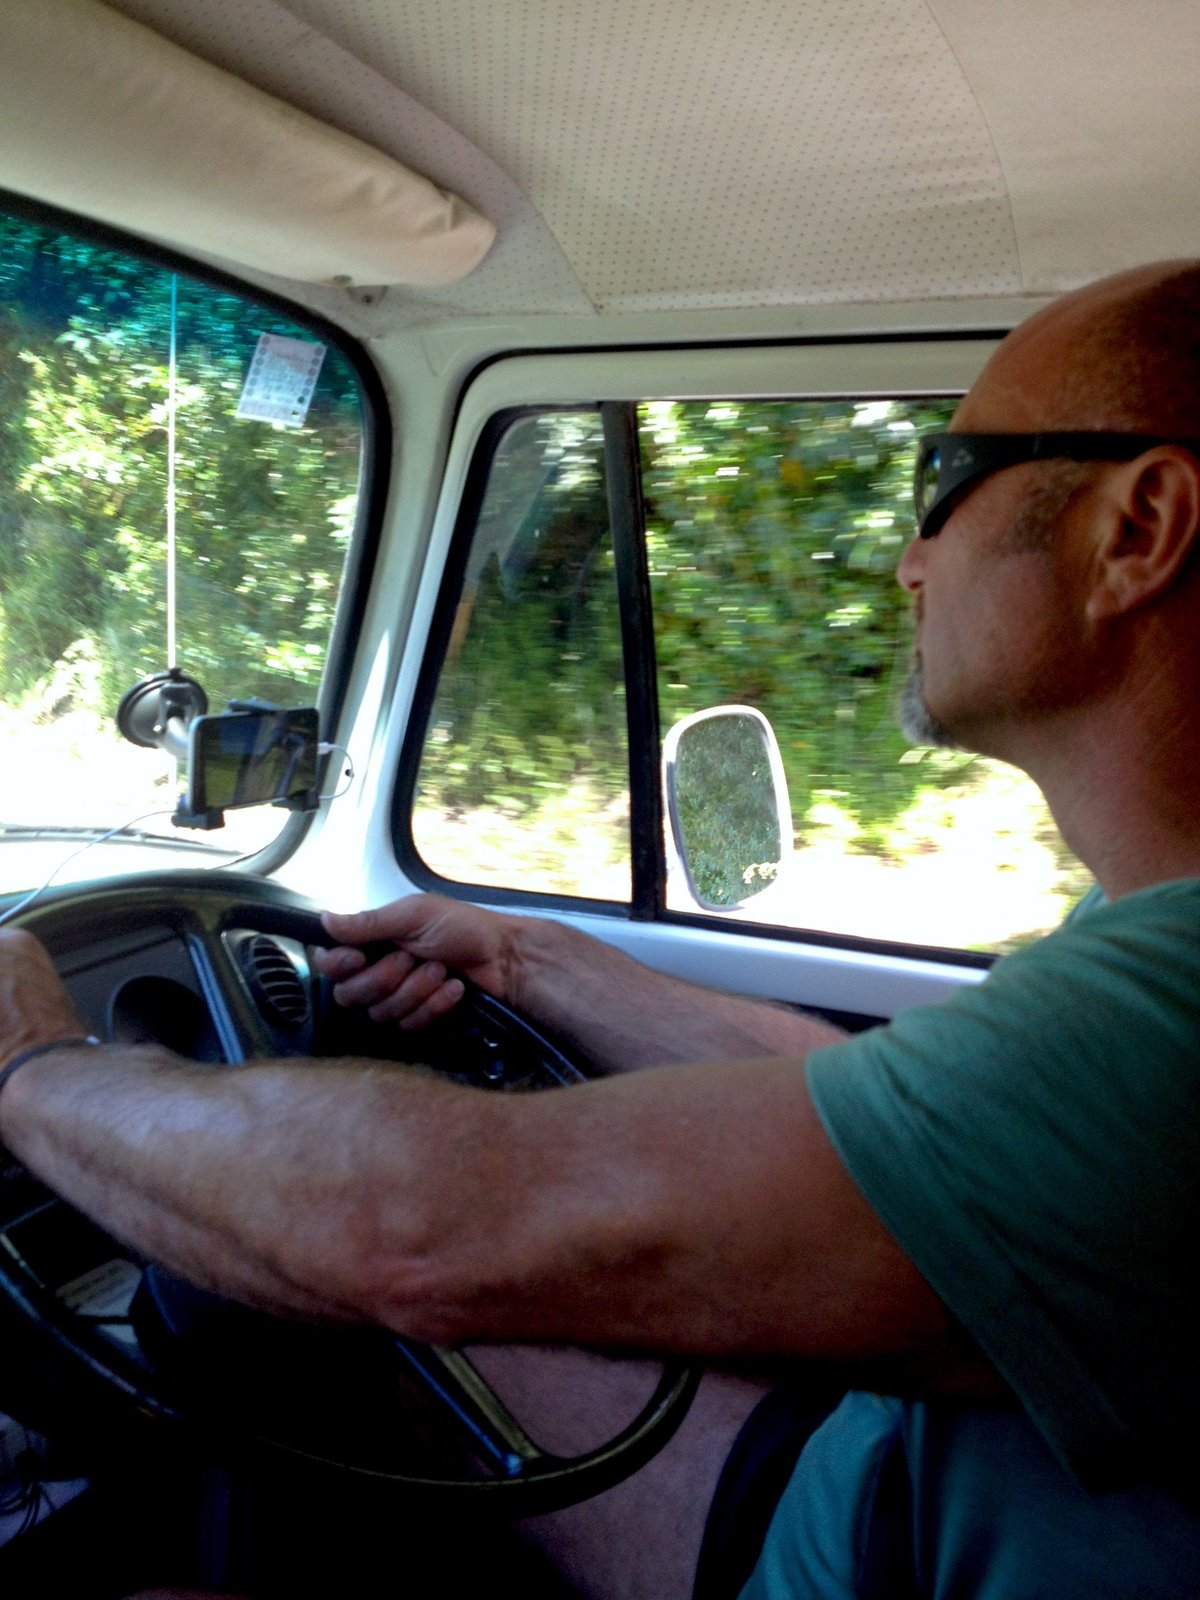 Warren driving Aggiee, our retro kombi van, Southland, New Zealand